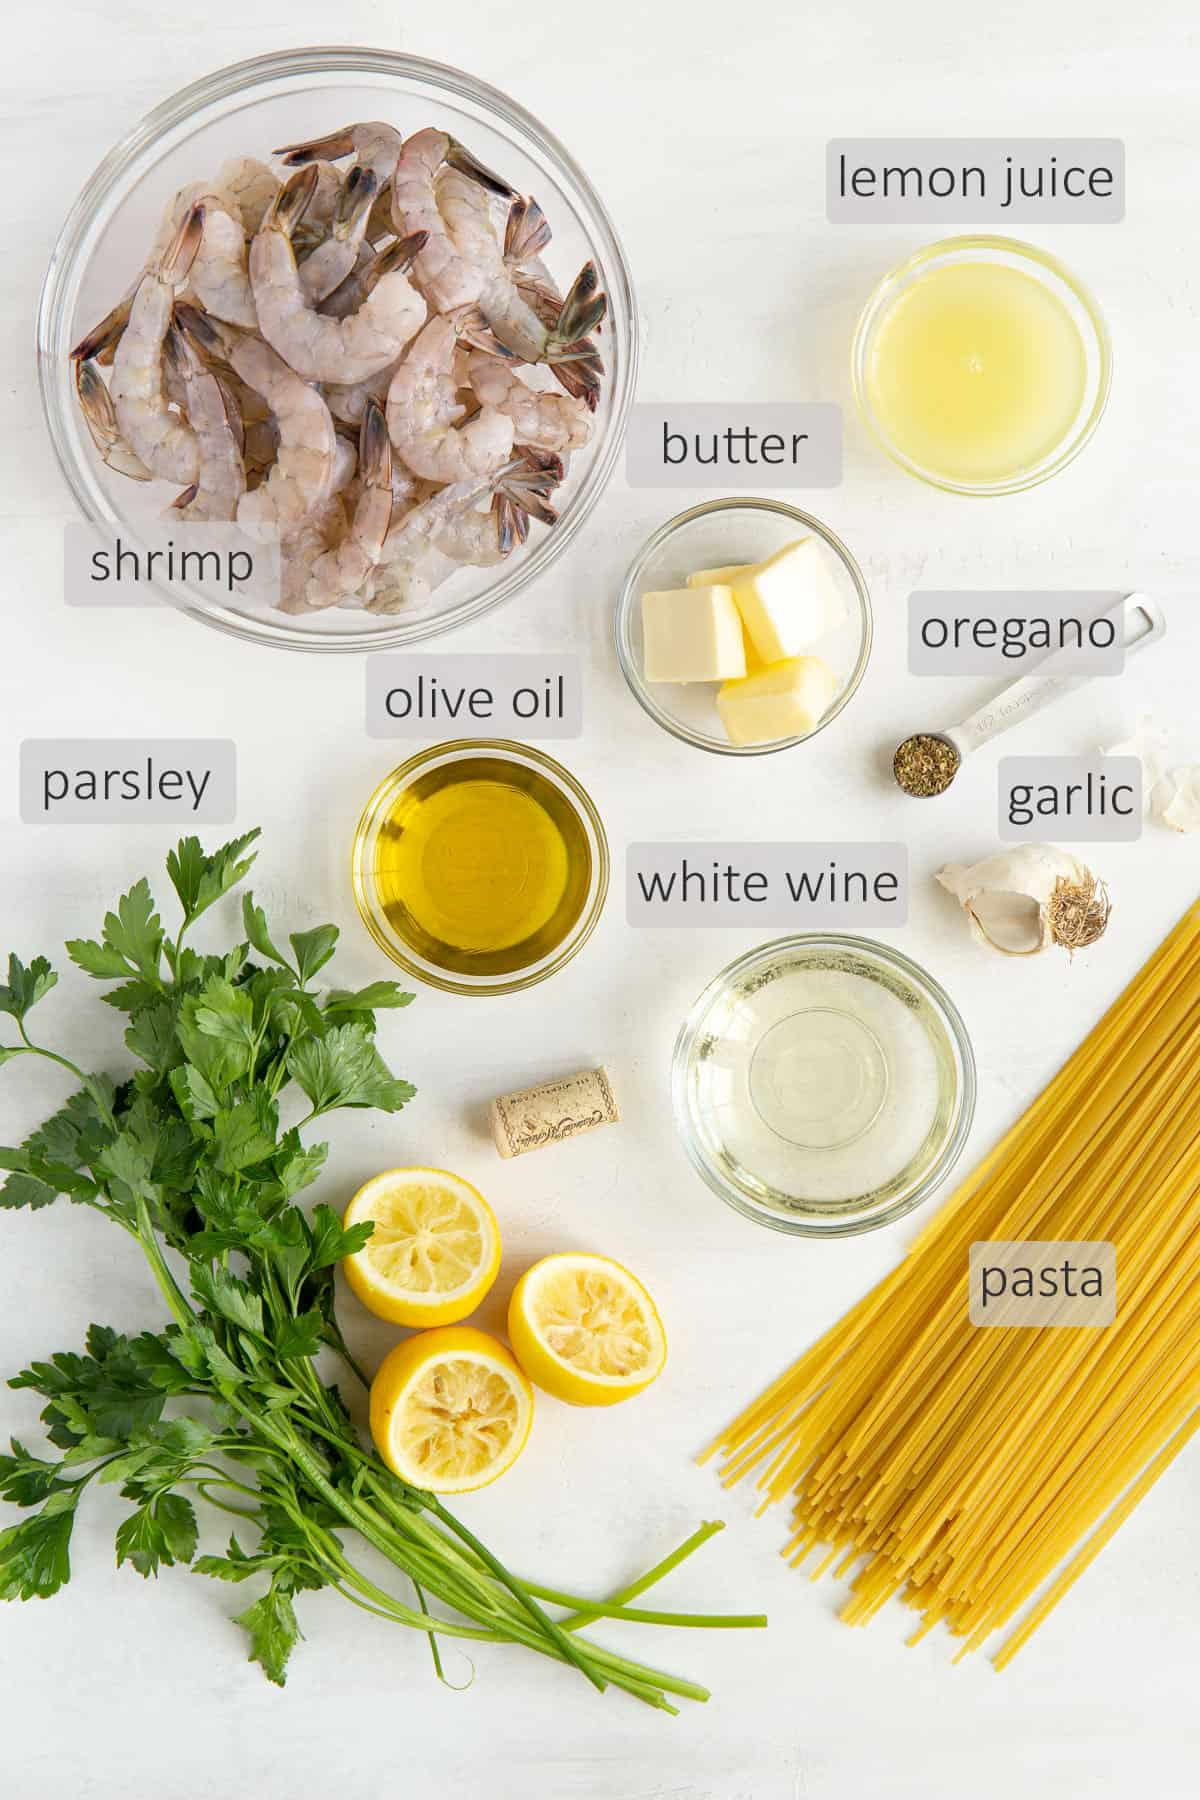 Overhead view of ingredients for shrimp scampi pasta on a white surface.